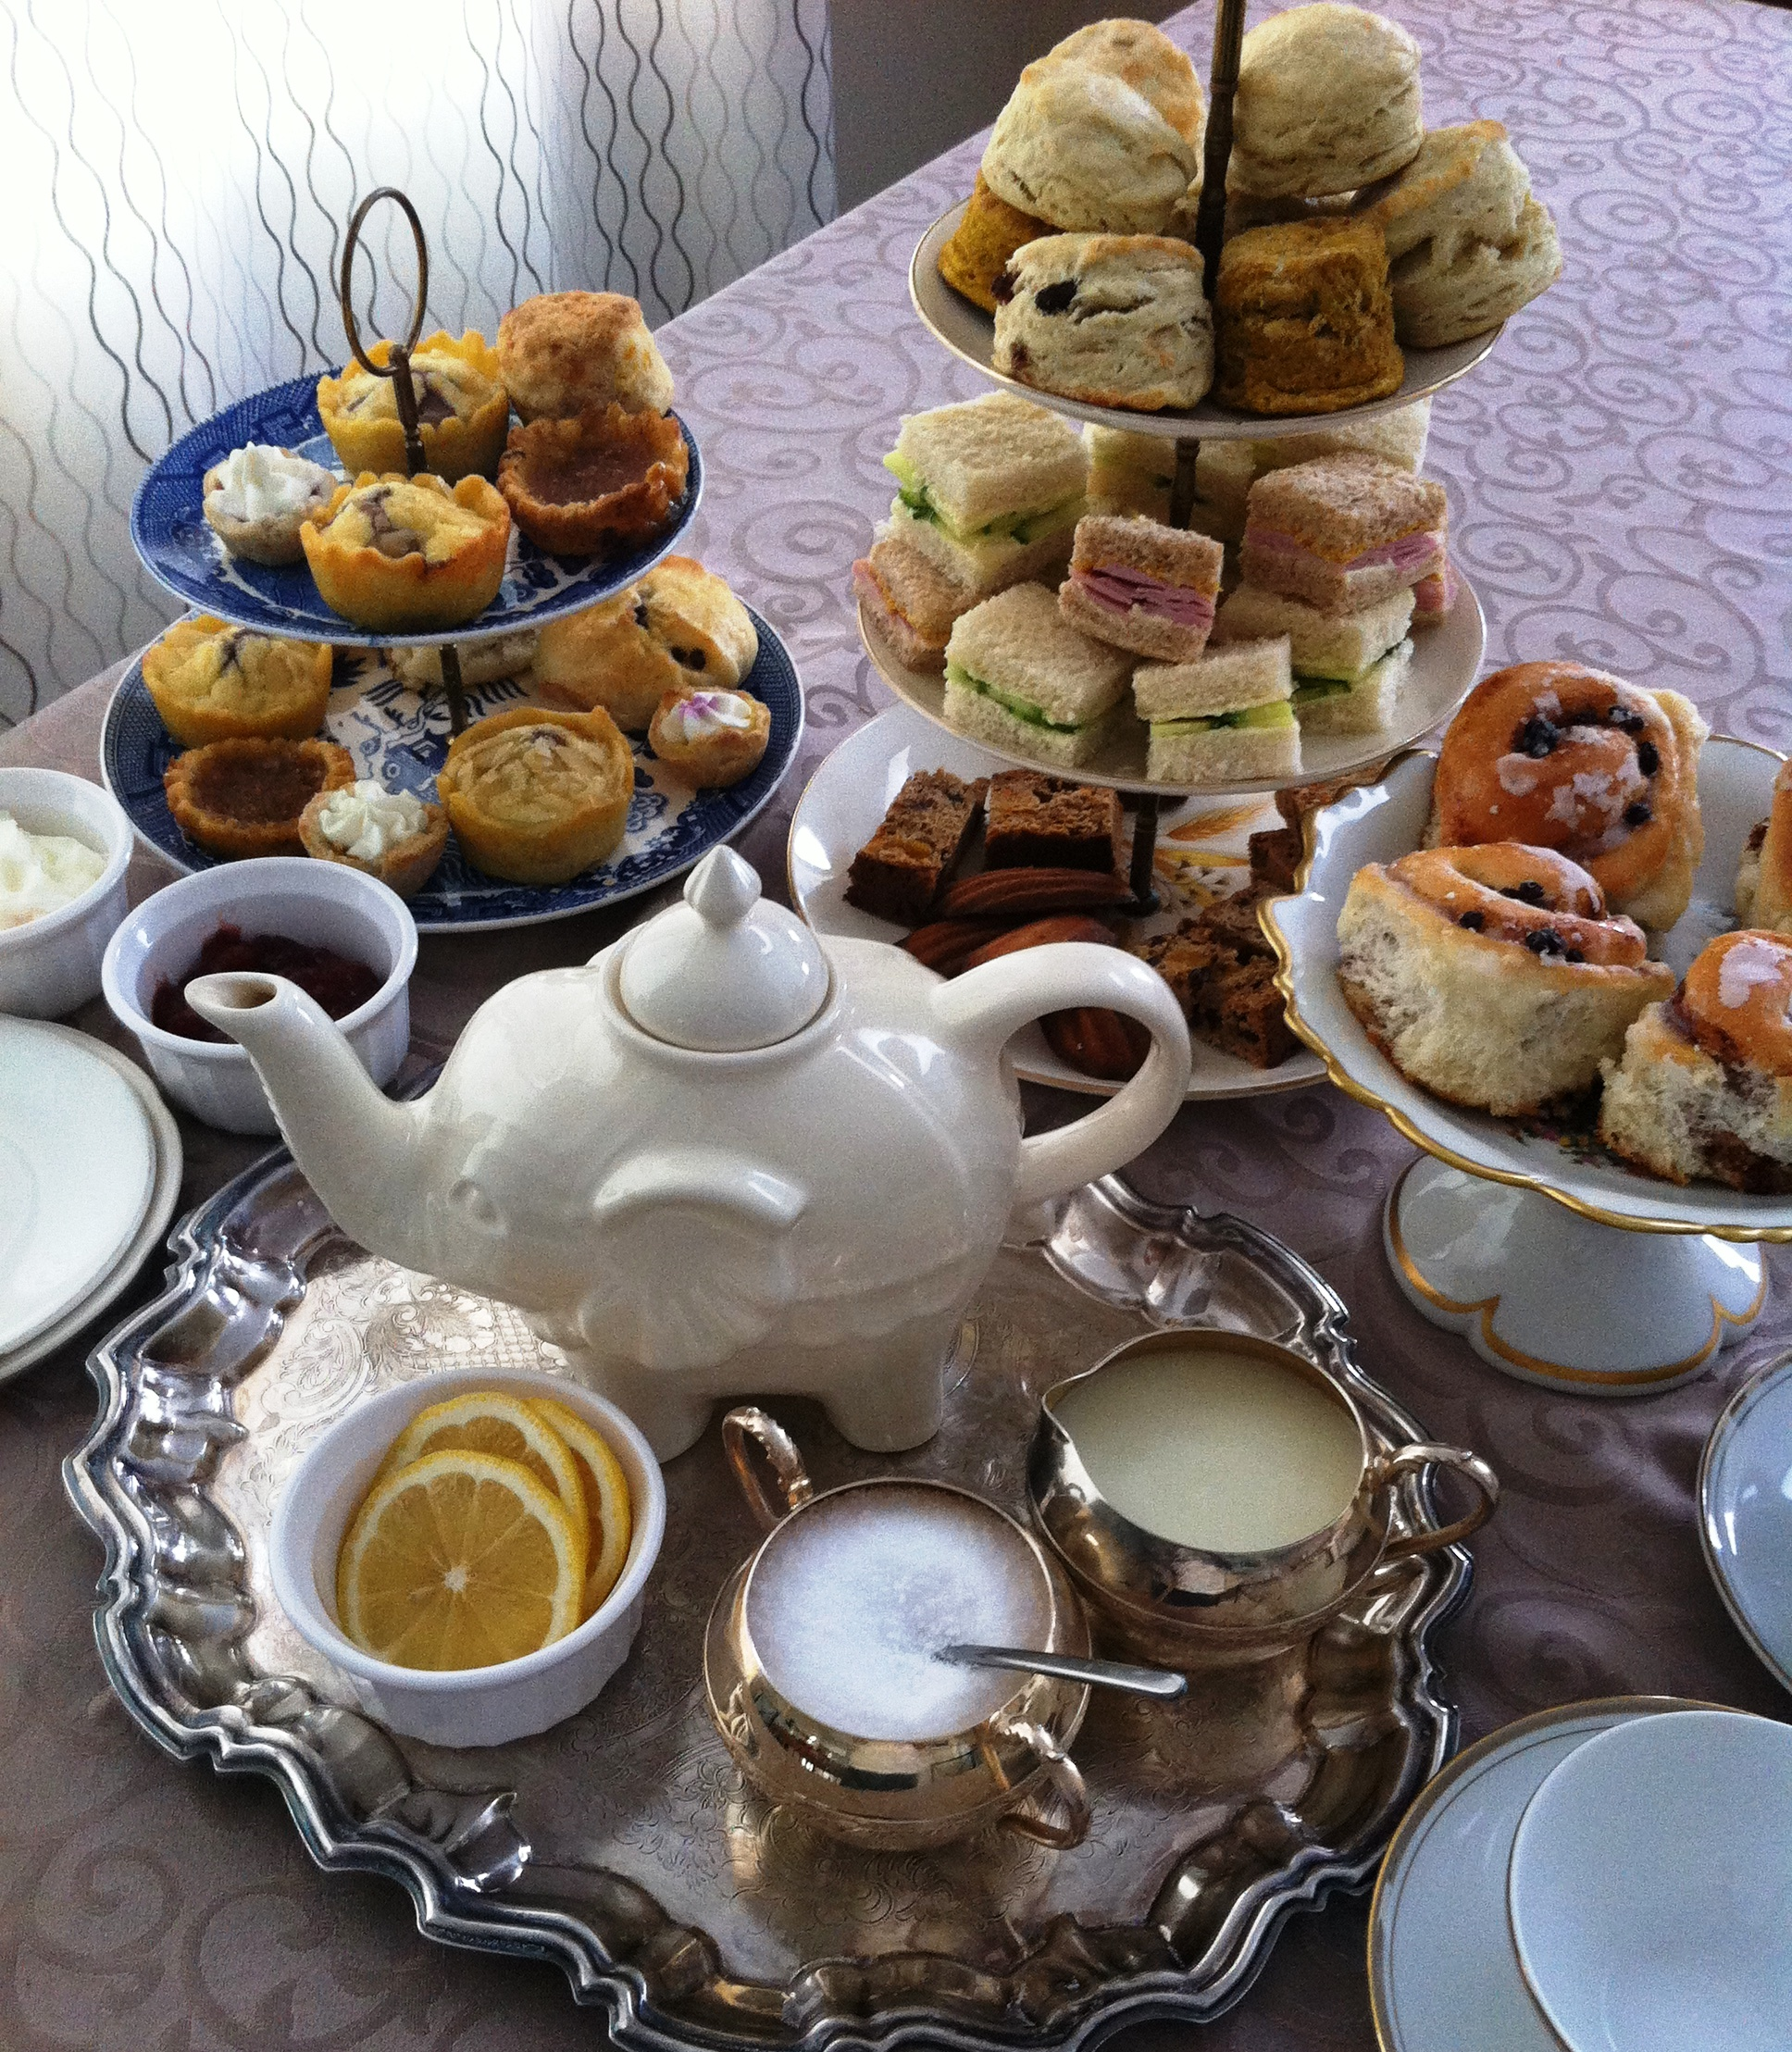 Downton Abbey Cooks Online Guide to Afternoon Tea